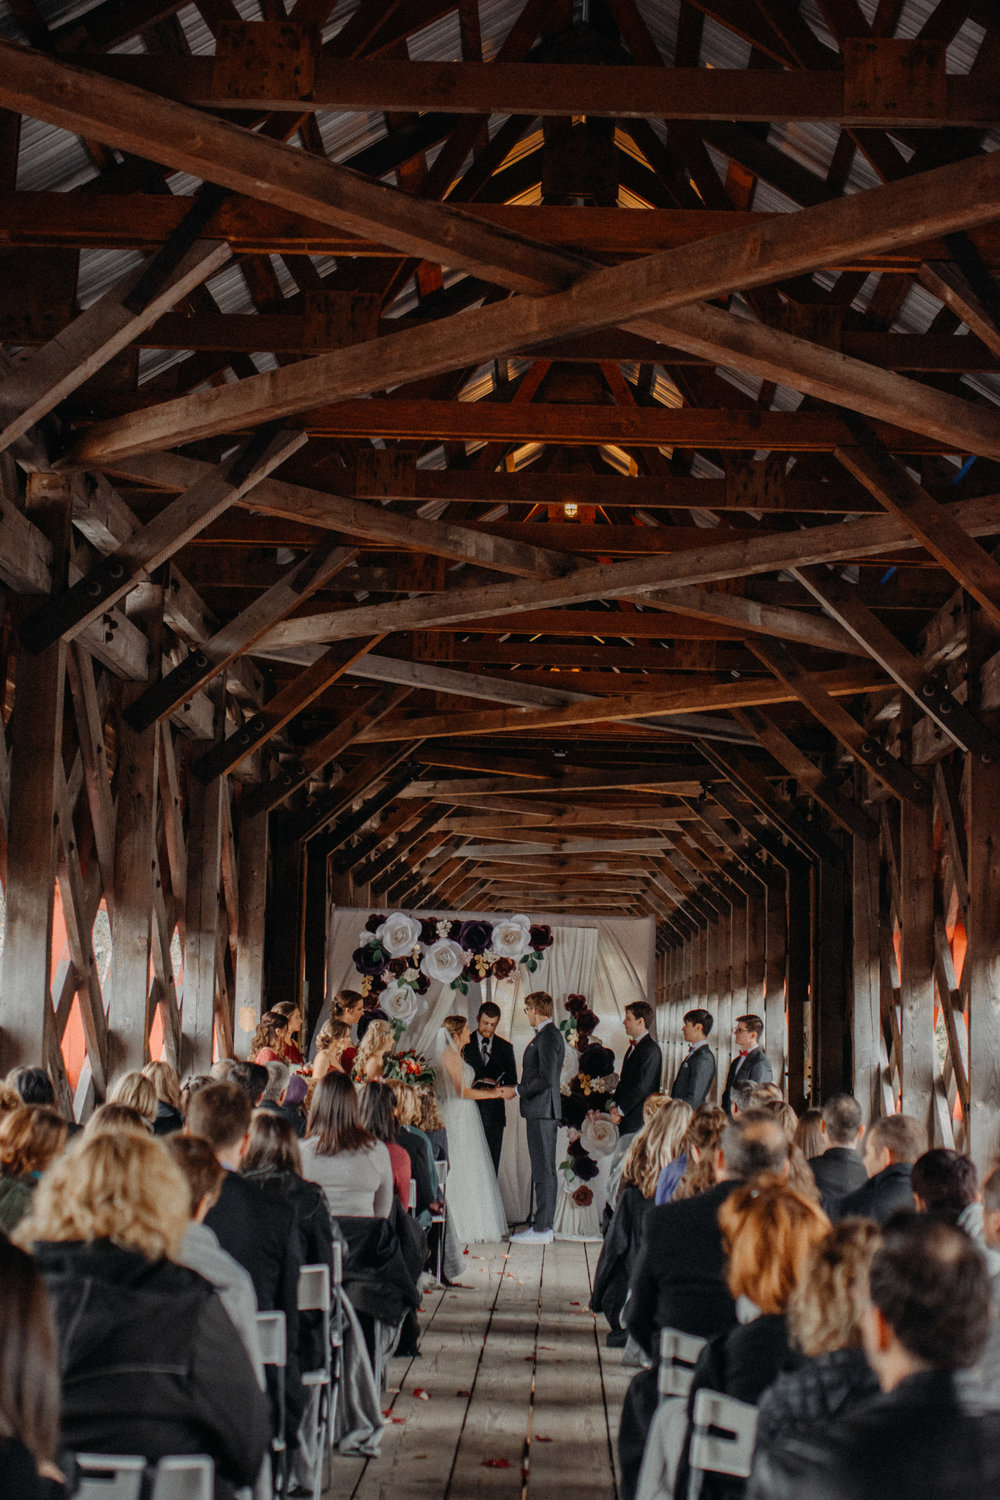 photographe_gatineau_mariage_ottawa_photographer_wedding_natasha_liard_photo_documentary_candid_lifestyle_wakefield_mill_red_bridge (21).jpg